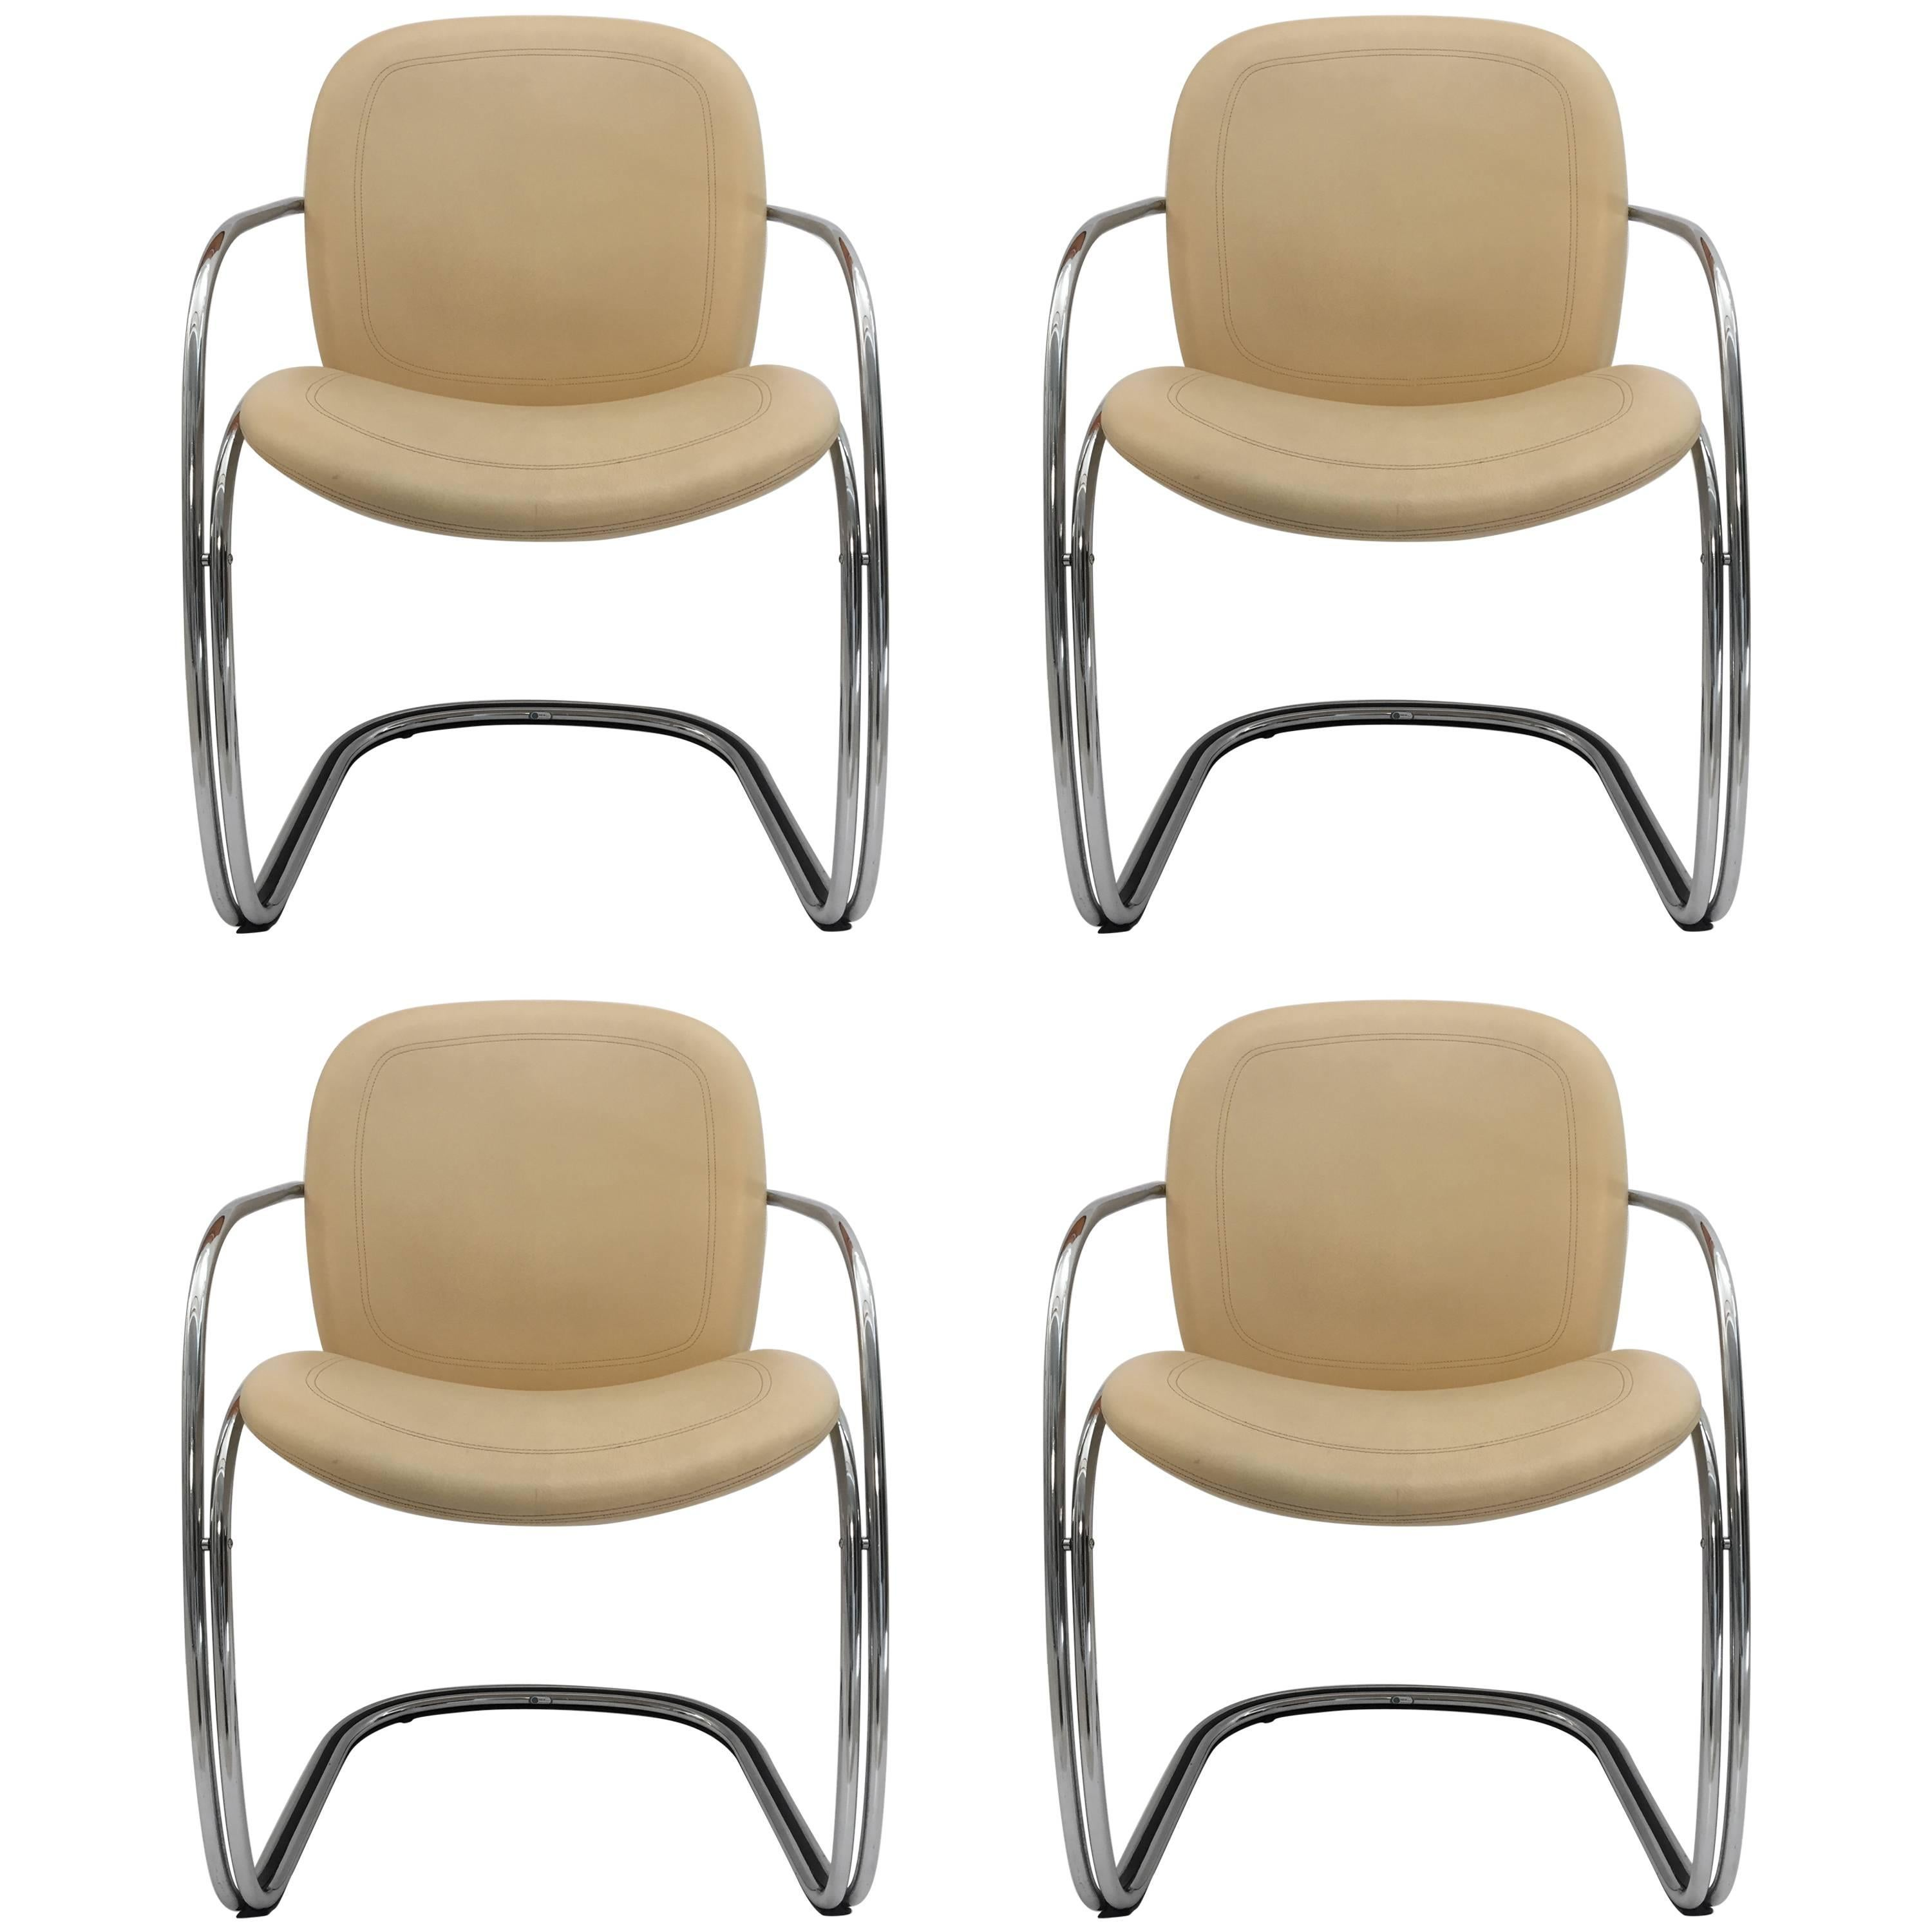 Set of Six Vintage and Chrome Chairs Design Gastone Rinaldi at 1stdibs